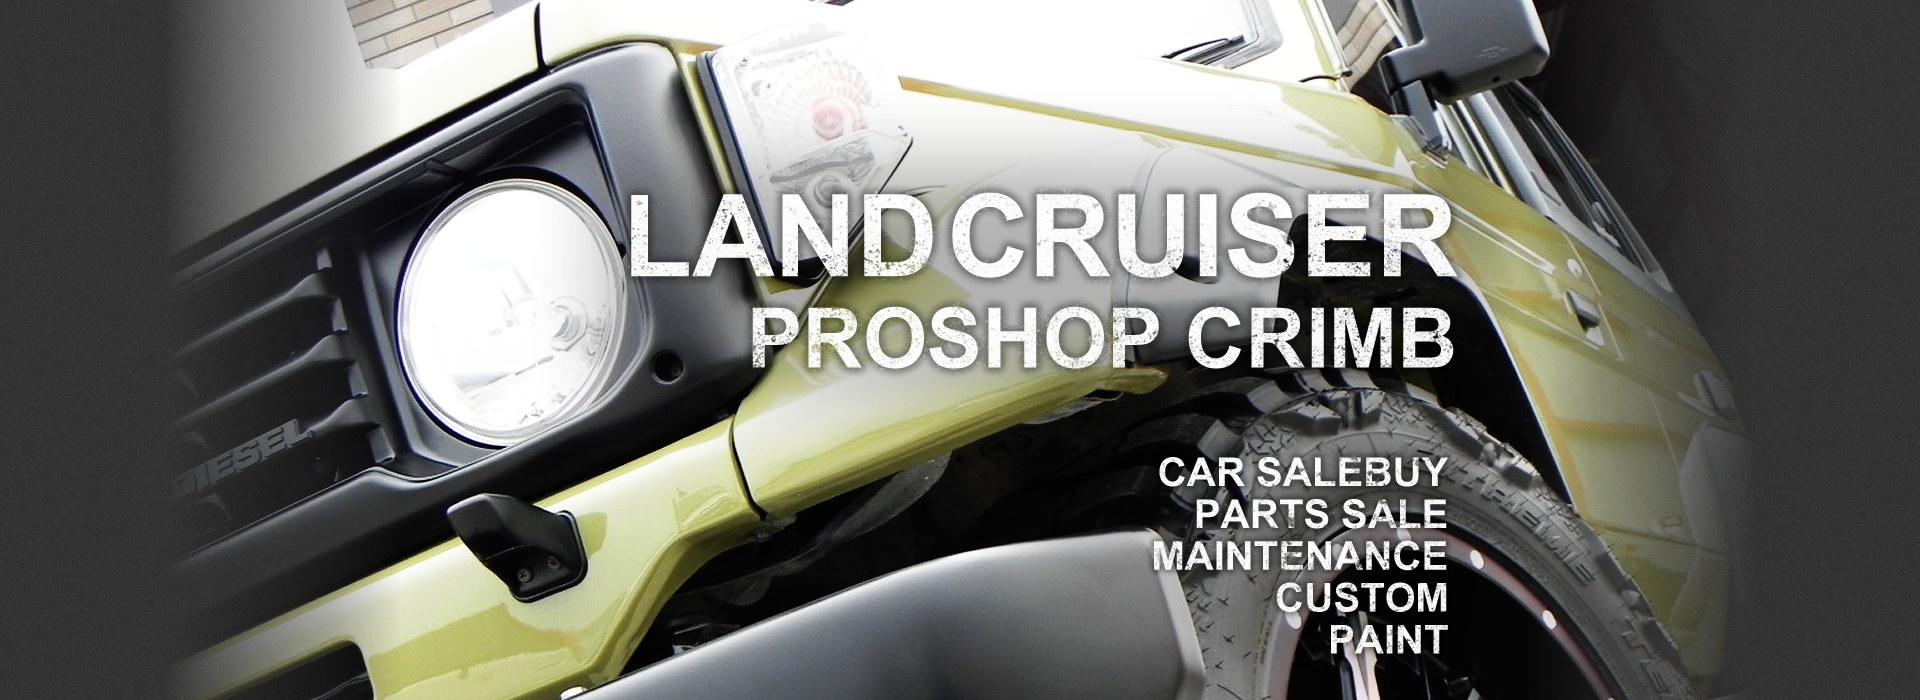 LAND CRUISER PROSHOP CRIMB CAR SALE&BUY PARTS SALE MAINTENANCE CUSTOM PAINT